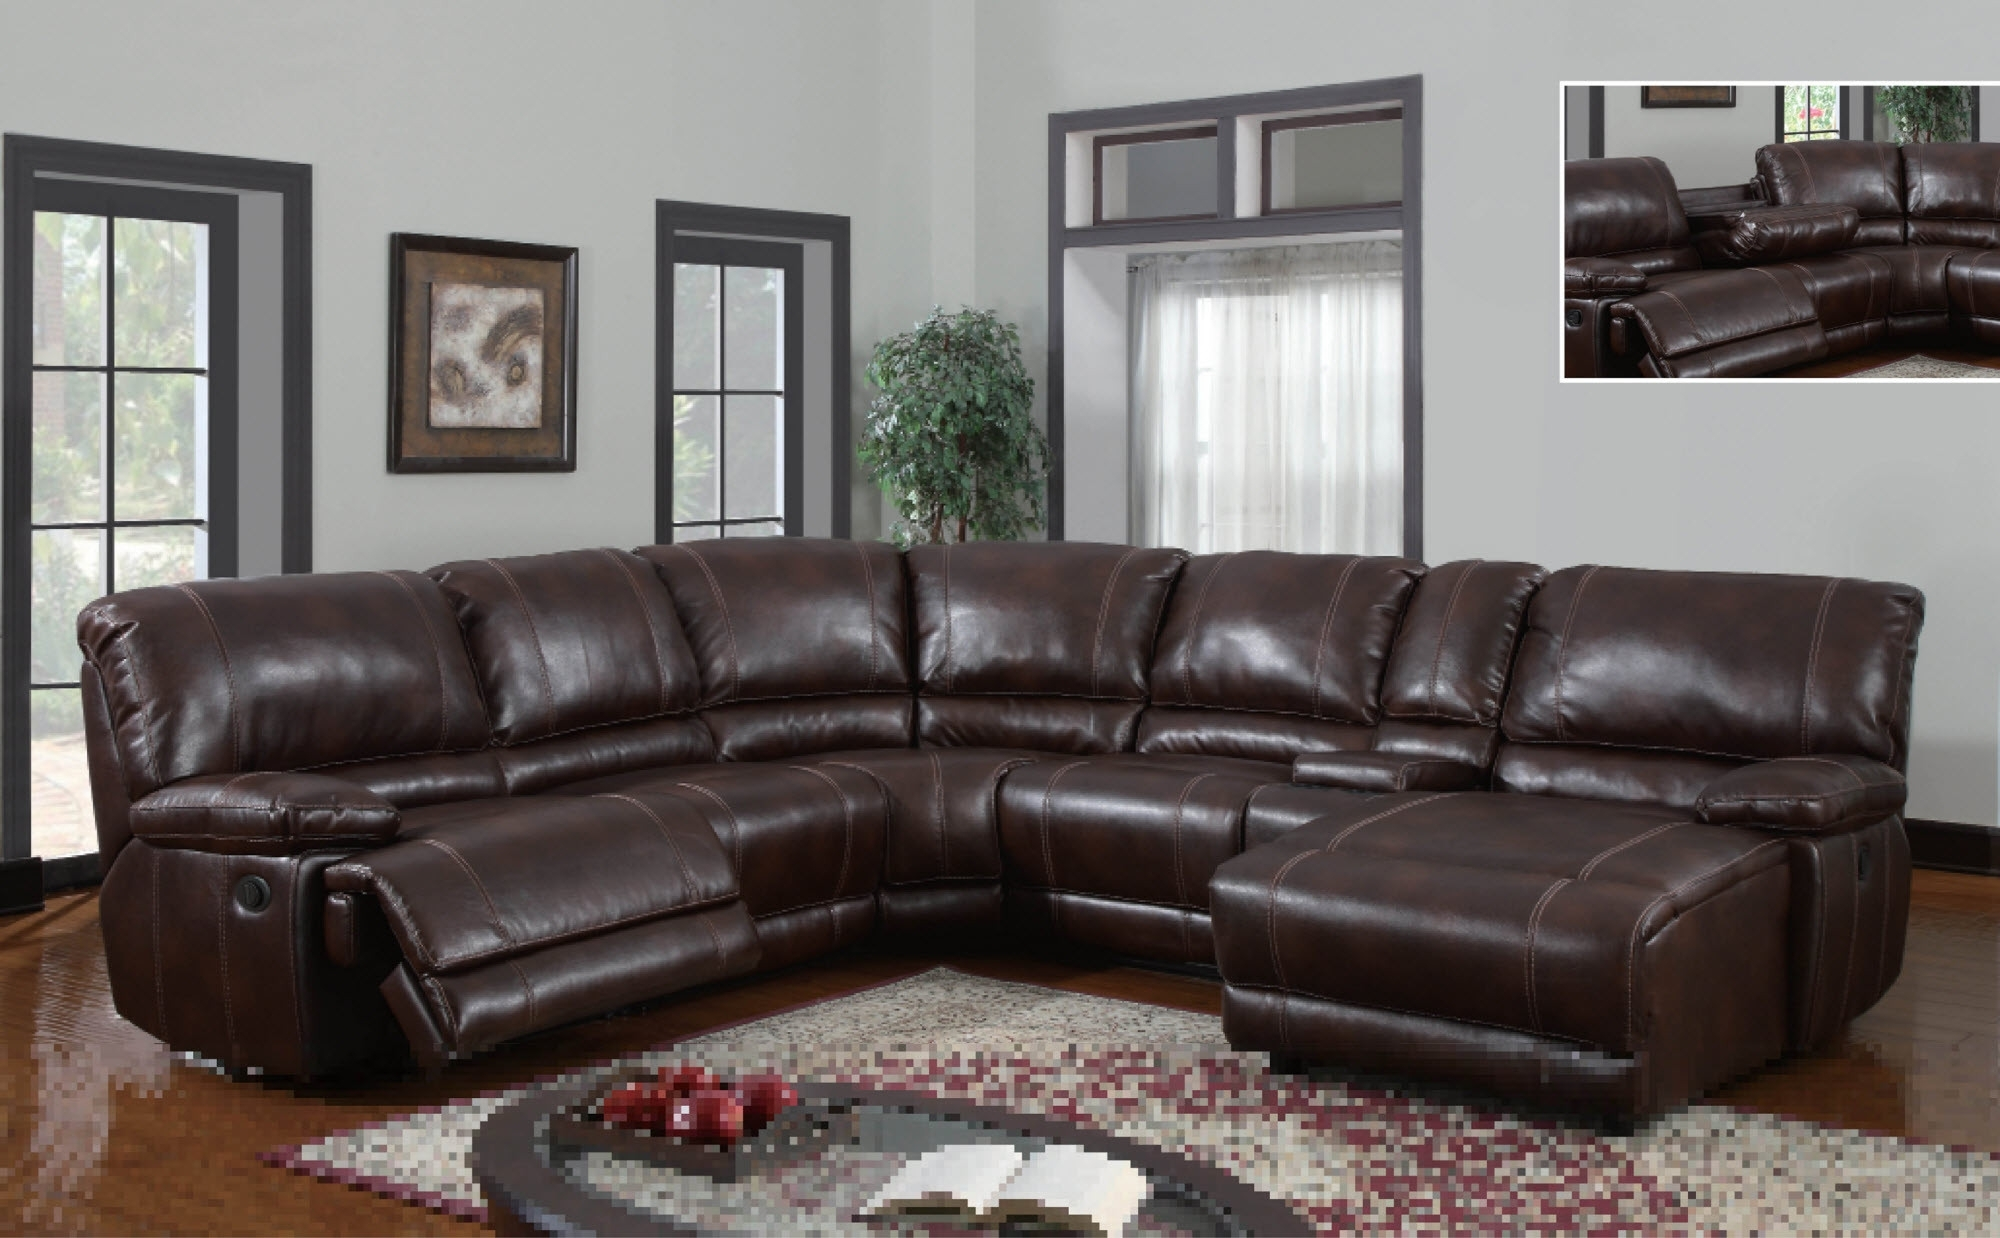 Conns Furniture El Paso Tx Luxury Living Room Cheap Sectional Sofas Intended For El Paso Tx Sectional Sofas (View 5 of 10)